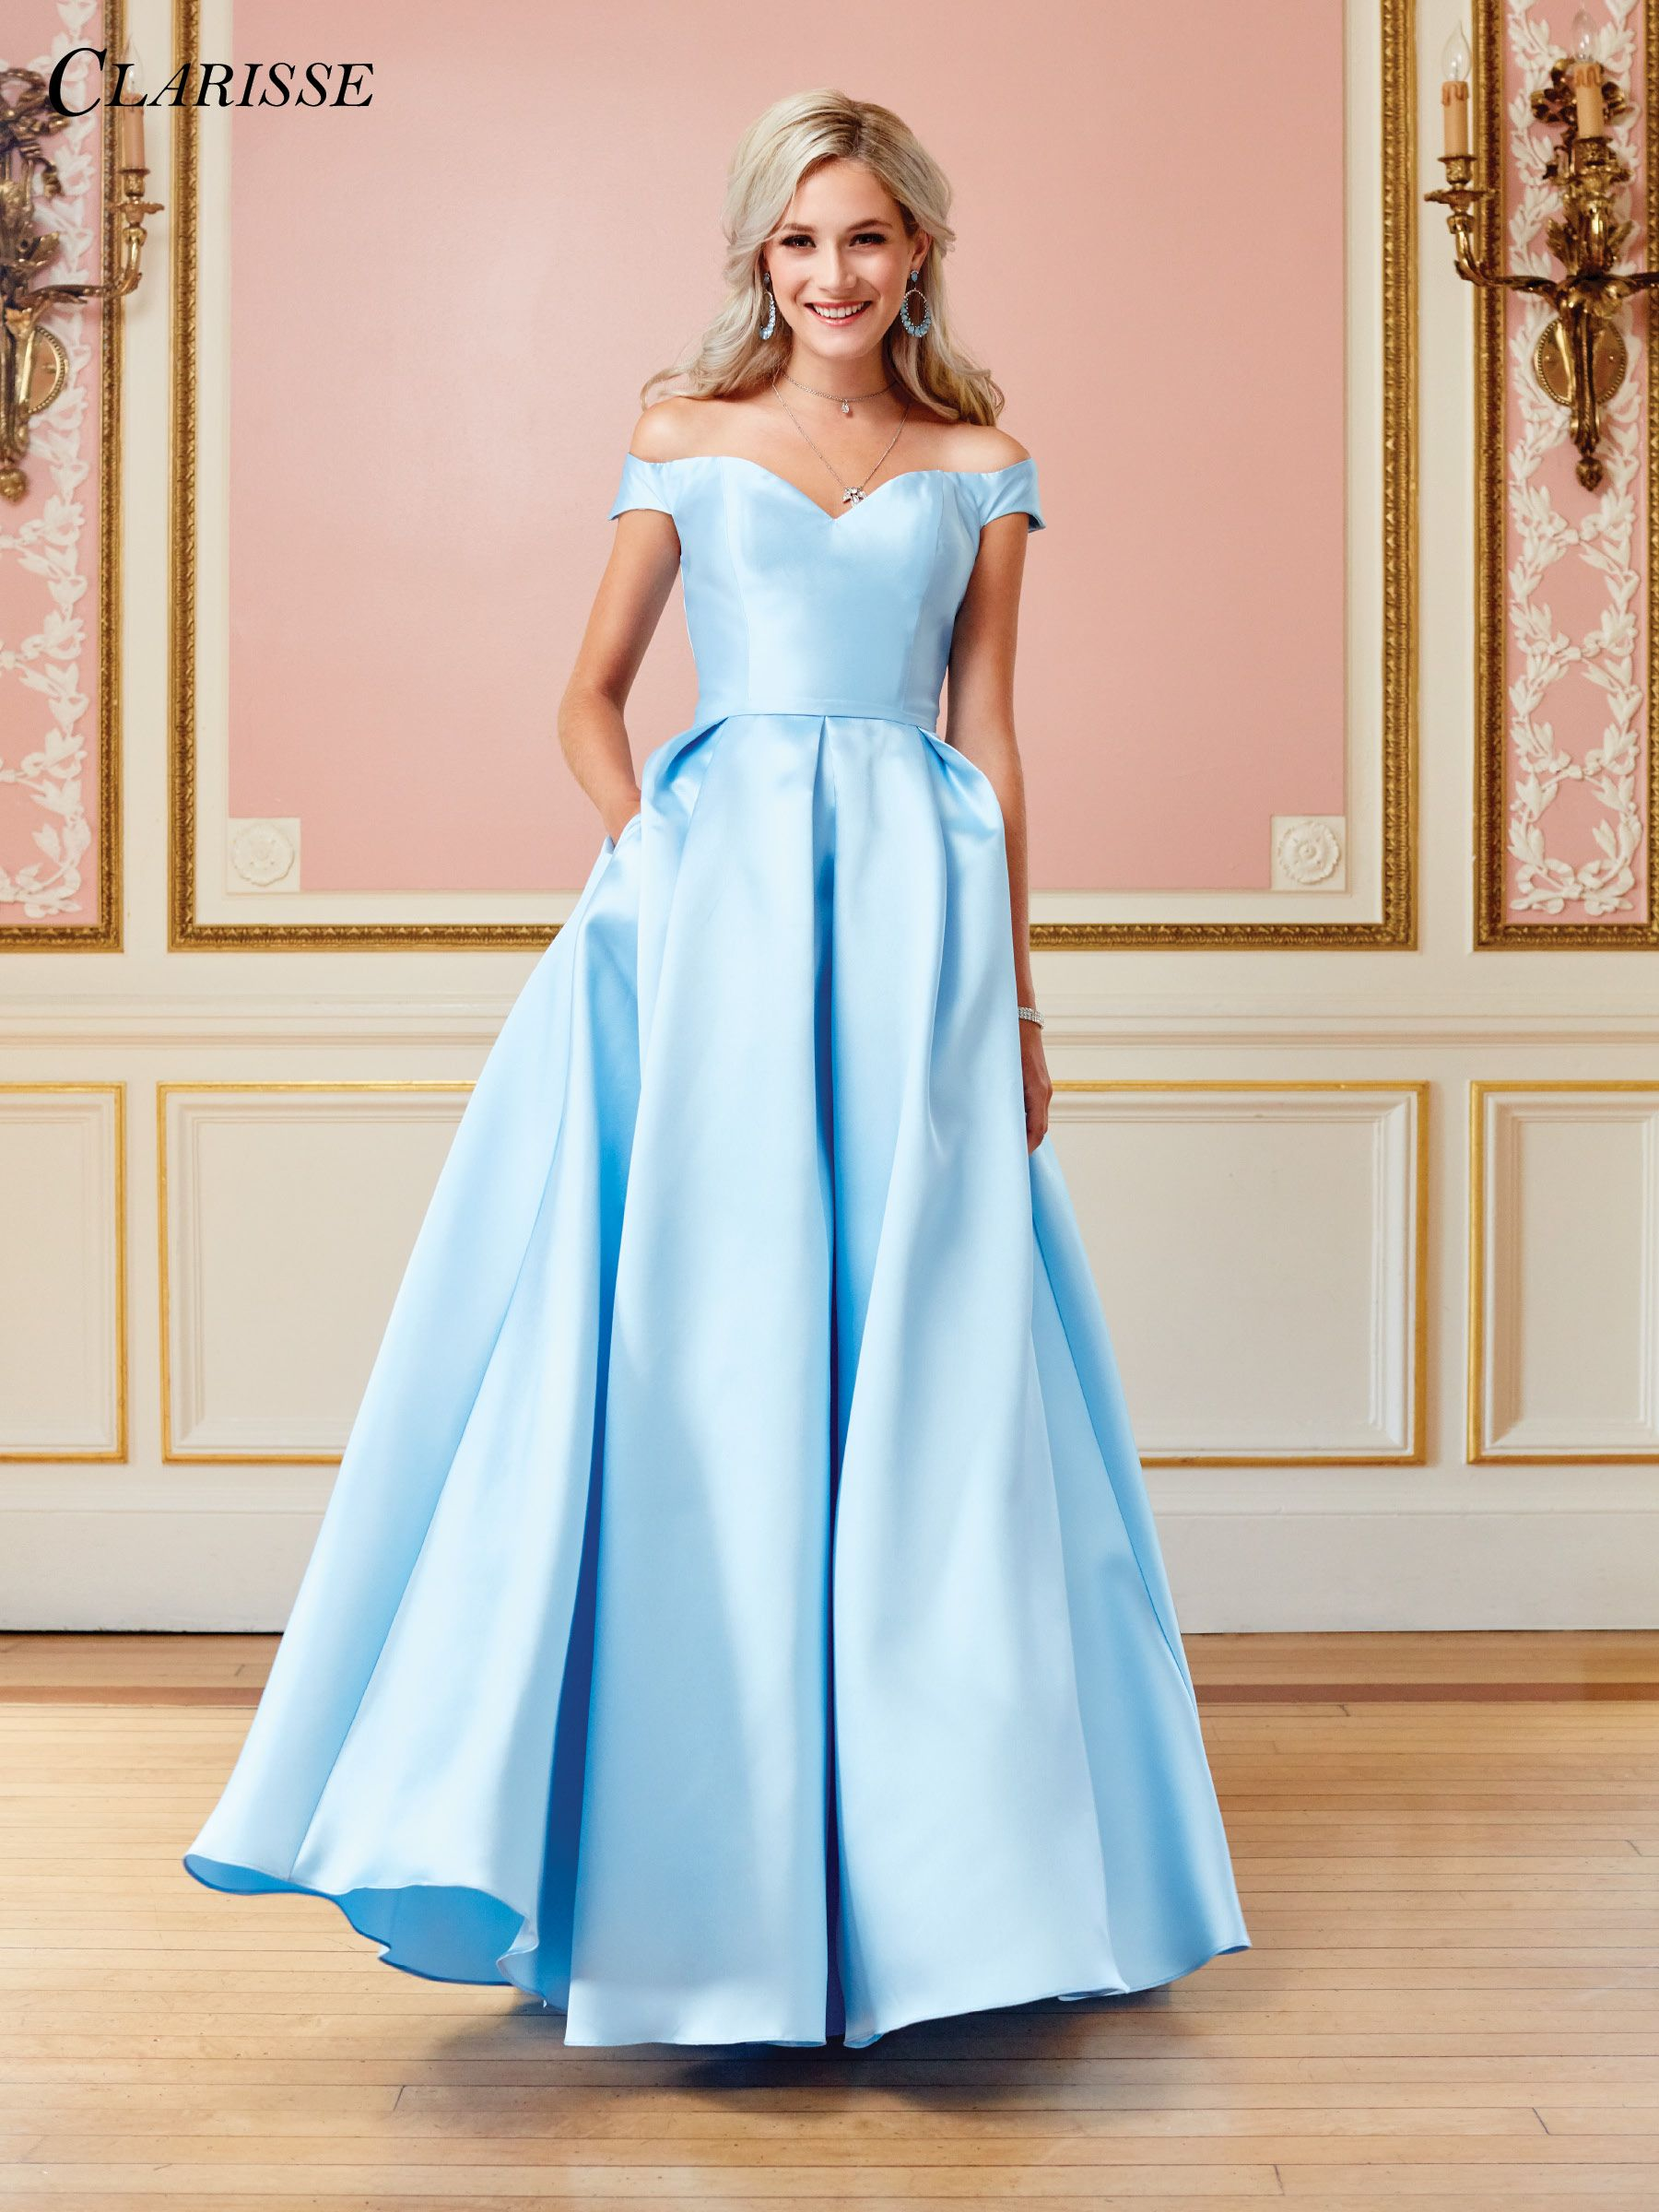 Clarisse Prom 2018 dress 3442. This gorgeous off the shoulder ...